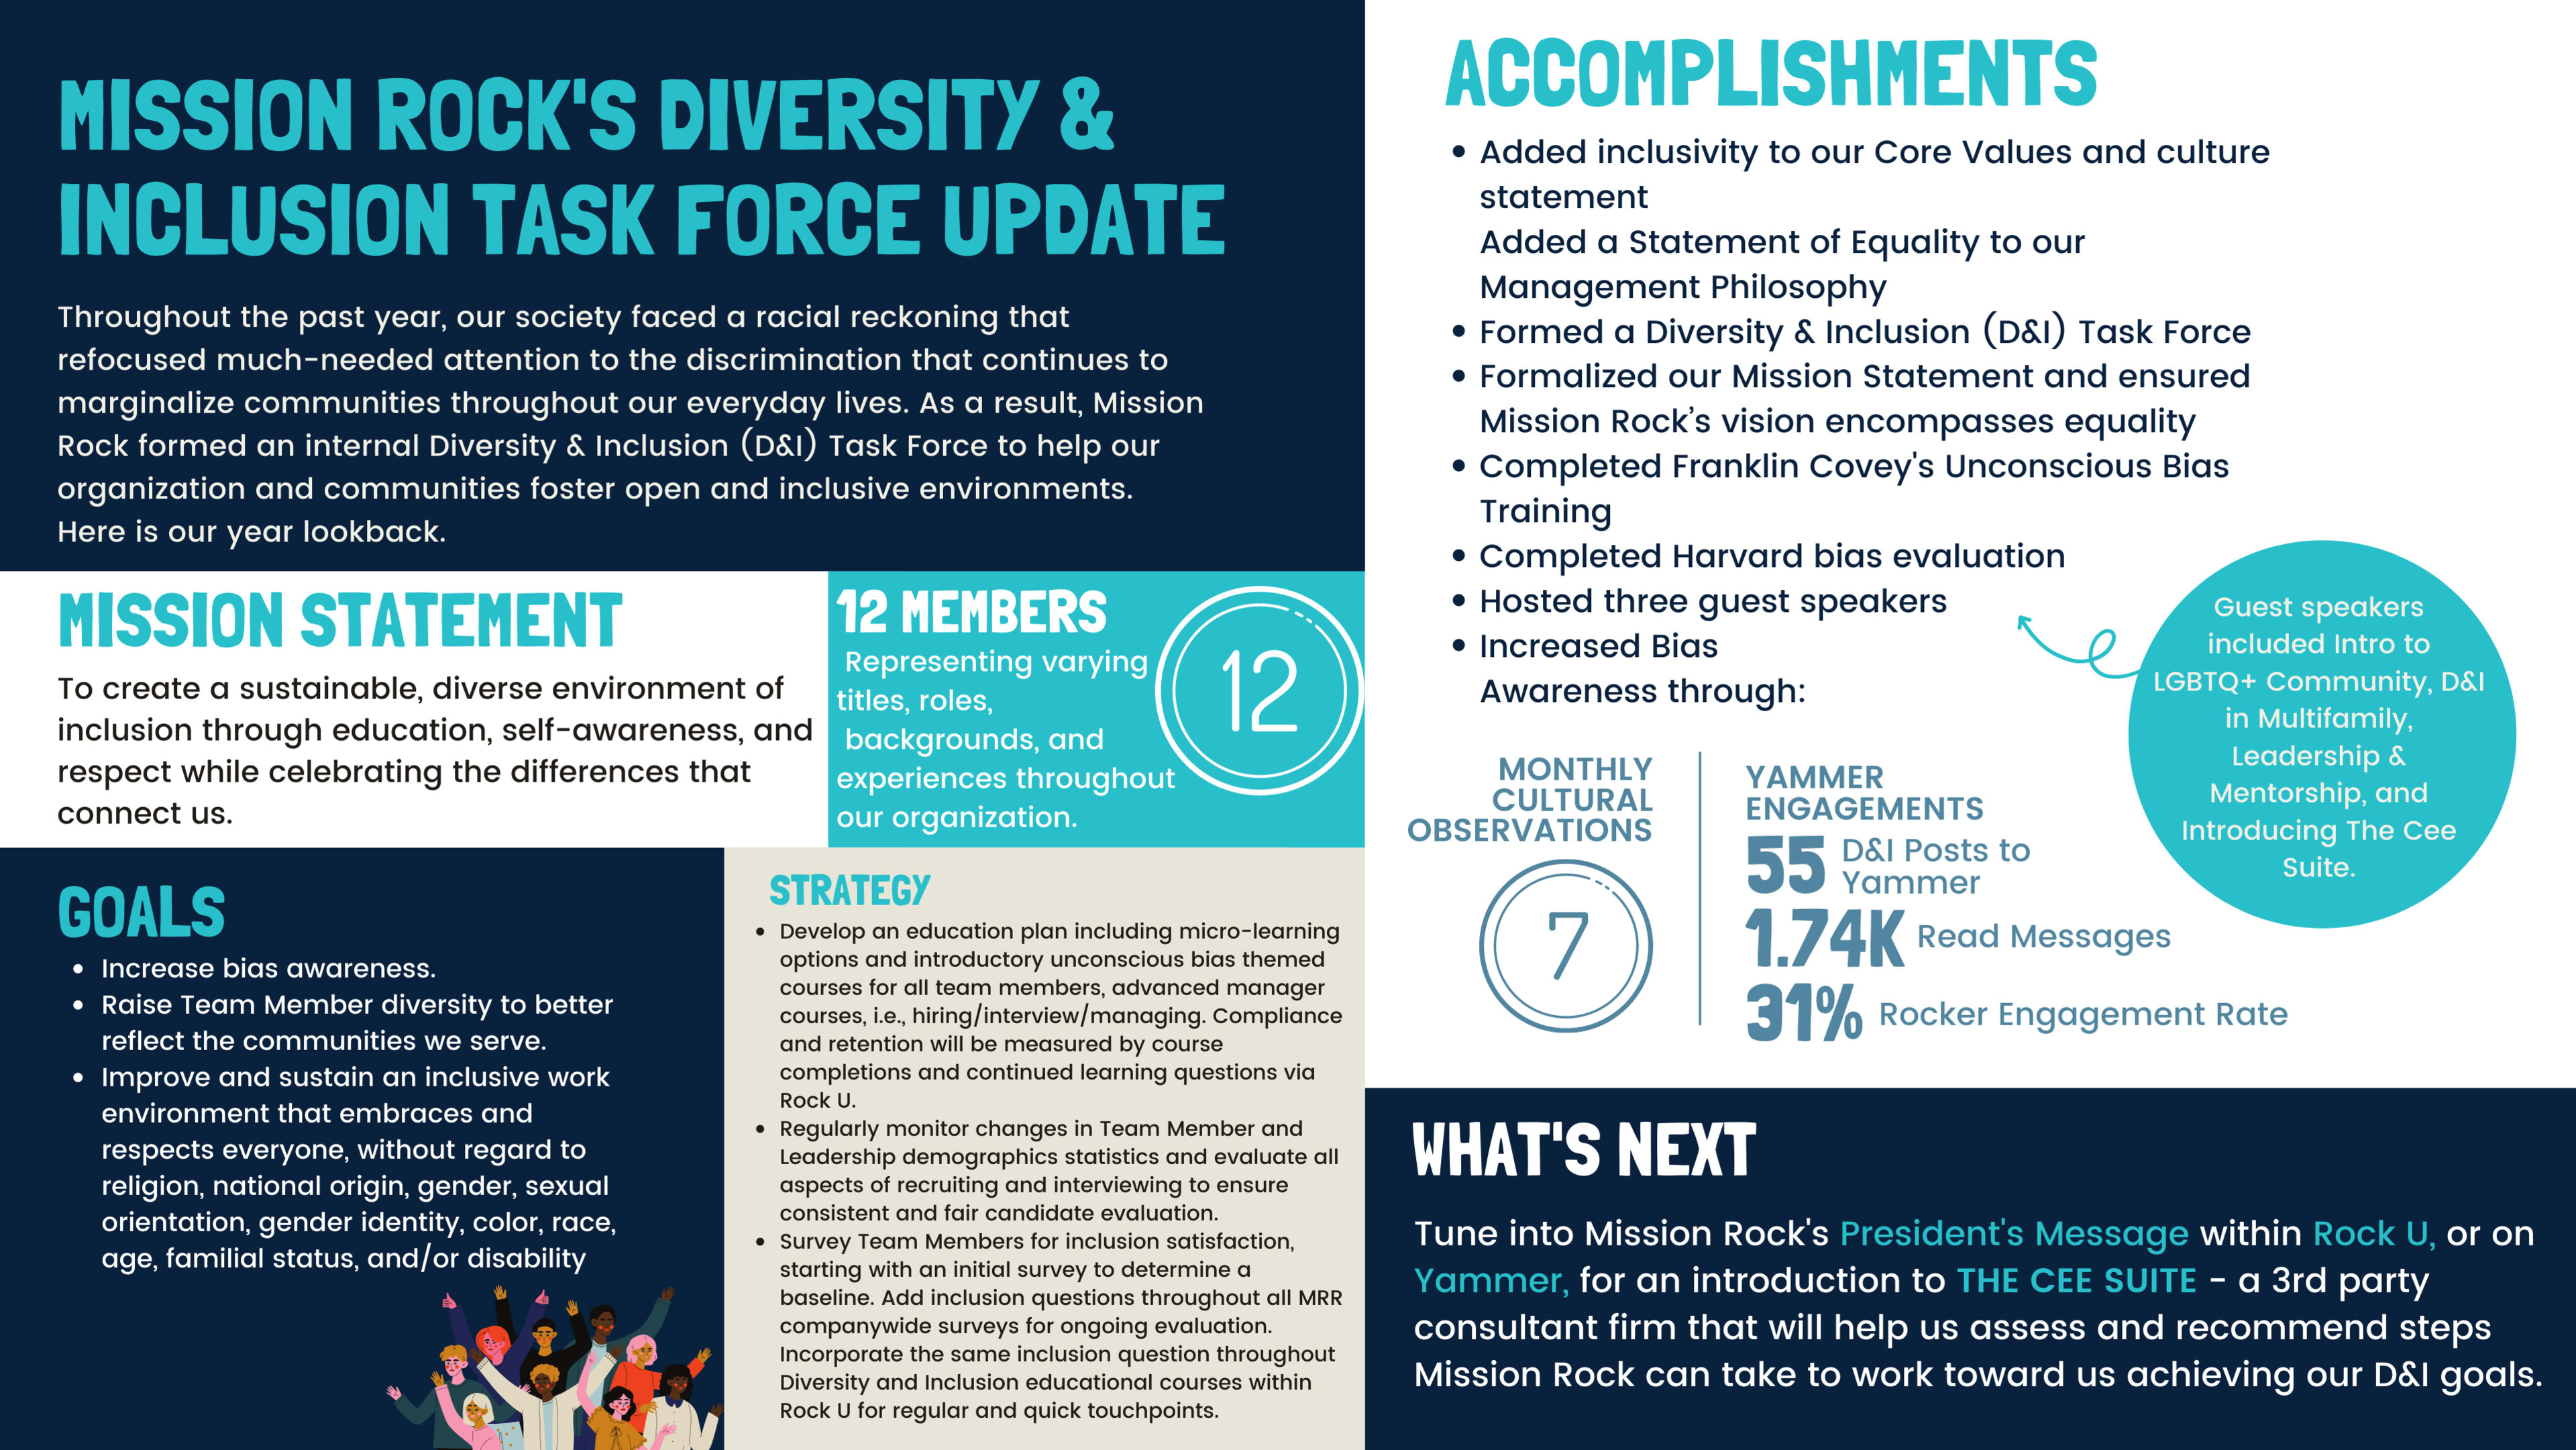 MIssionRock diversity and inclusion task force update